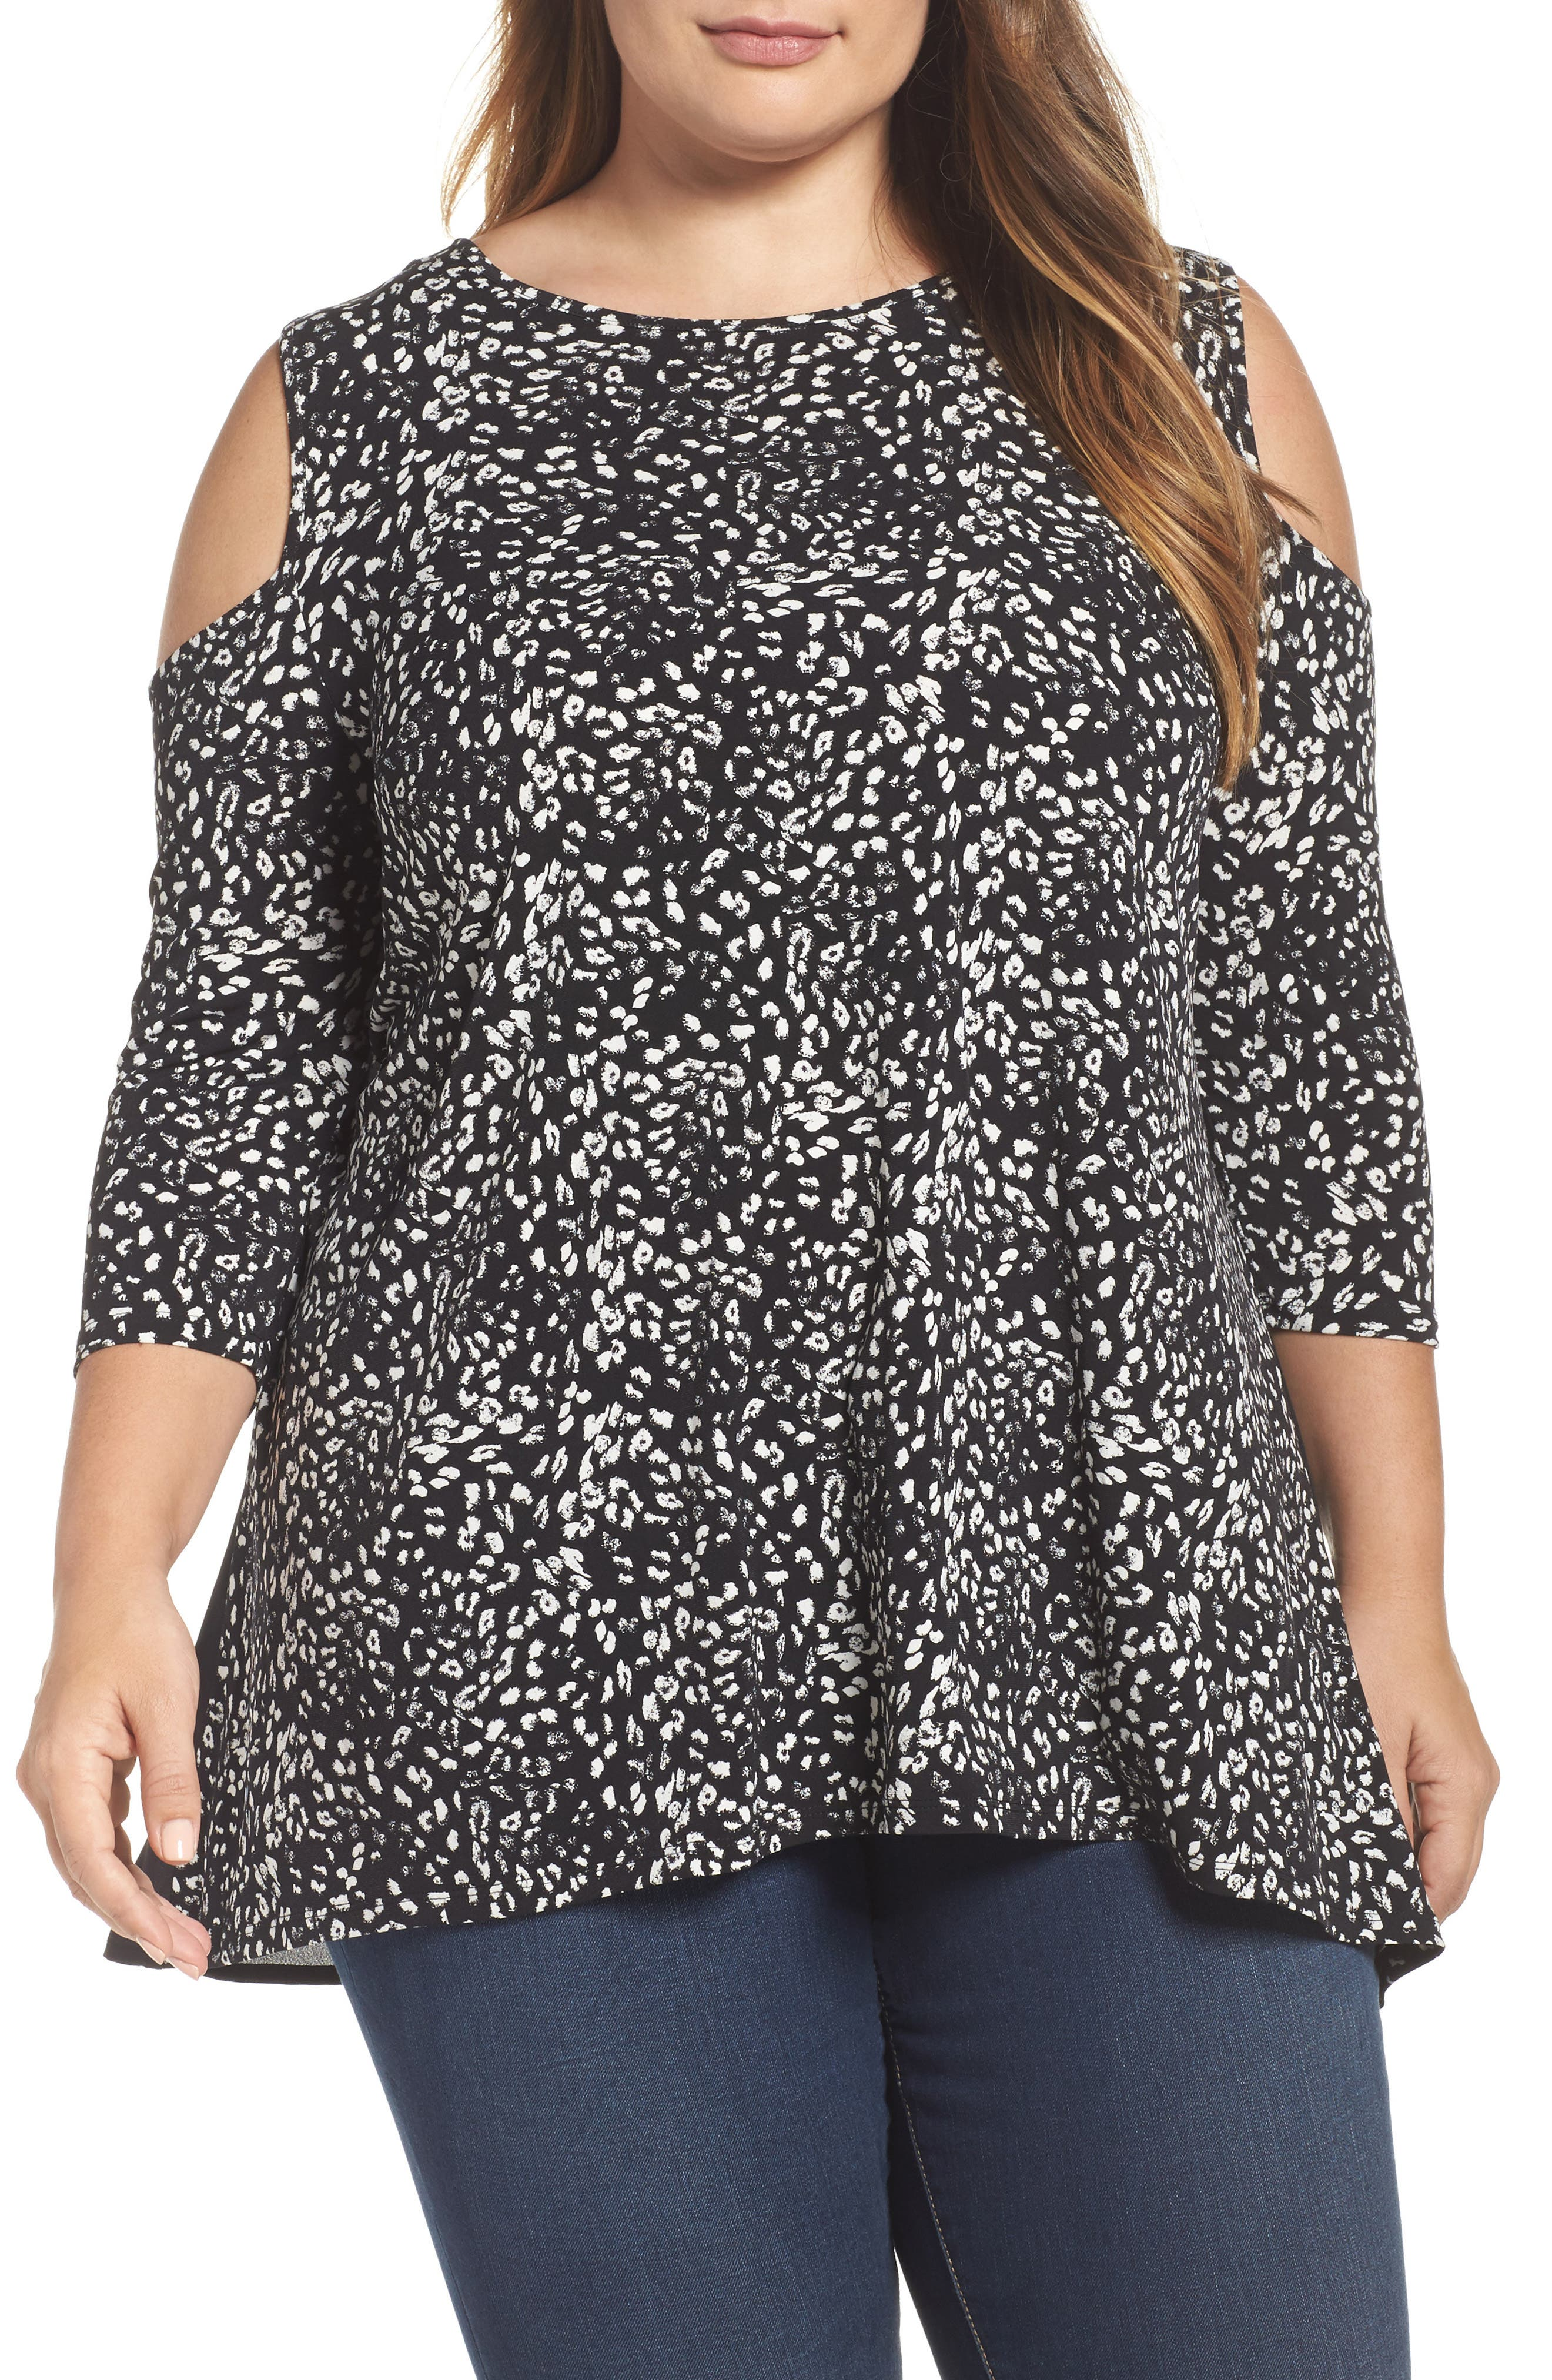 Animal Whispers Cold Shoulder Top,                             Main thumbnail 1, color,                             Rich Black